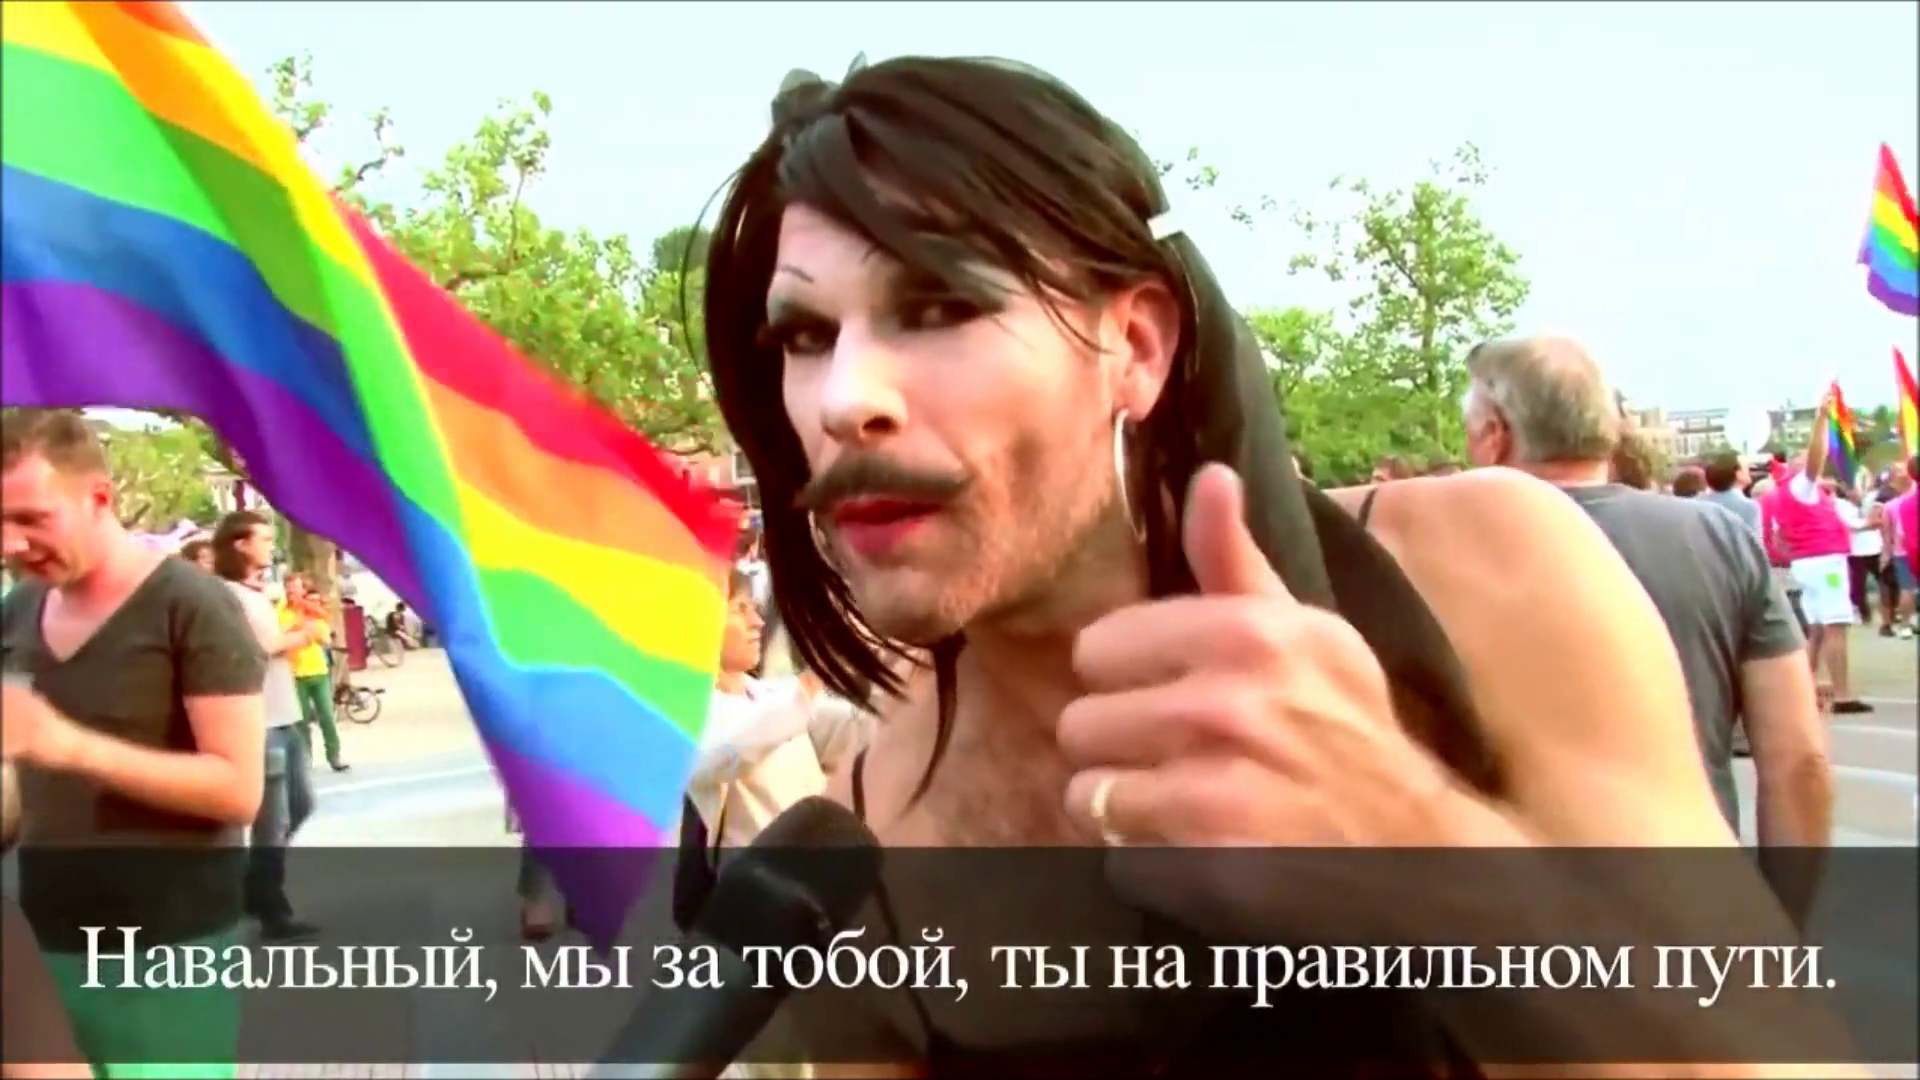 Gays all over the world support Navalny